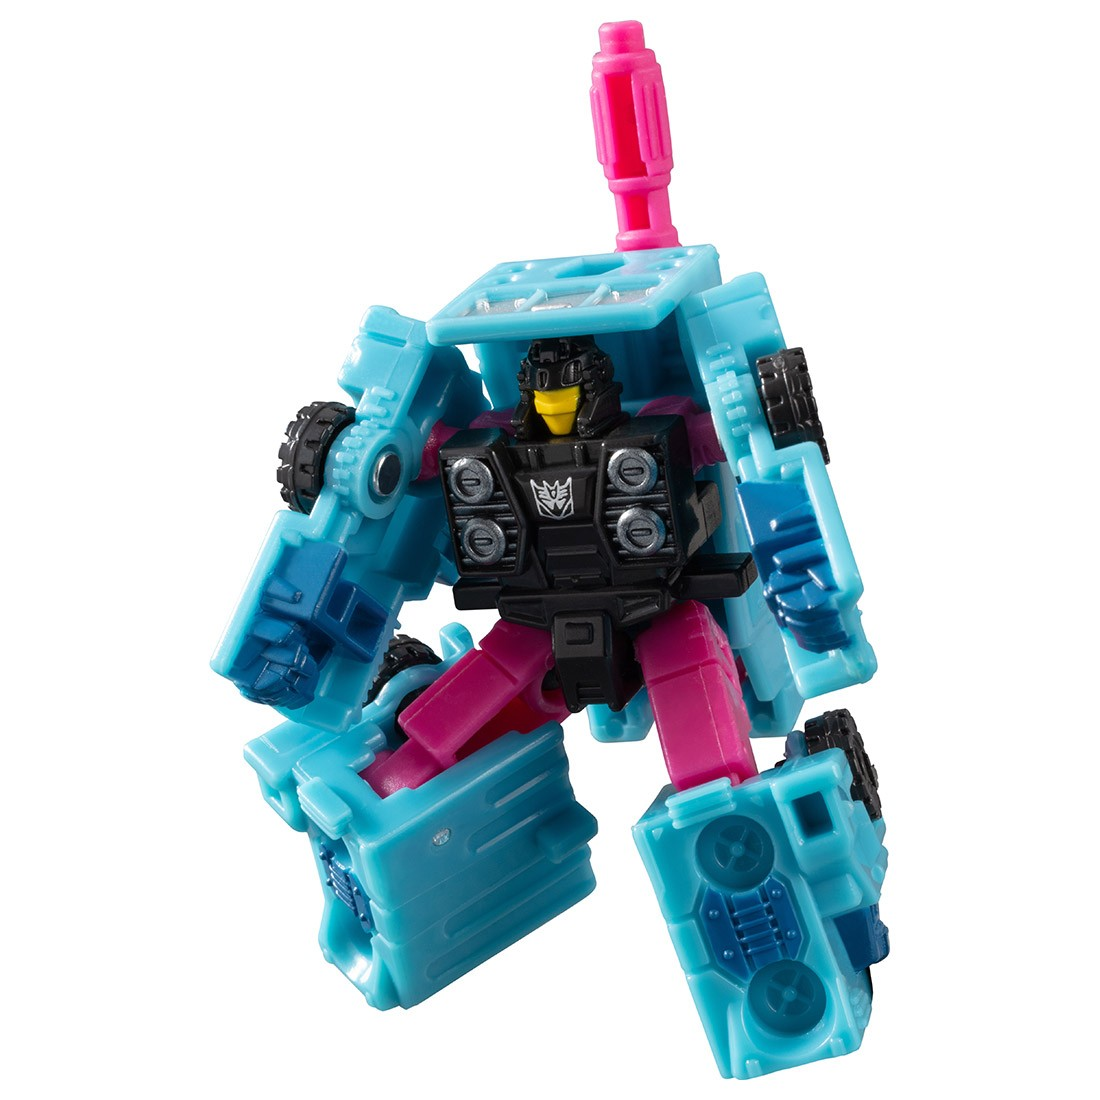 Transformers News: New Stock Images Showing Final Deco for Siege Apeface, Crosswise and More